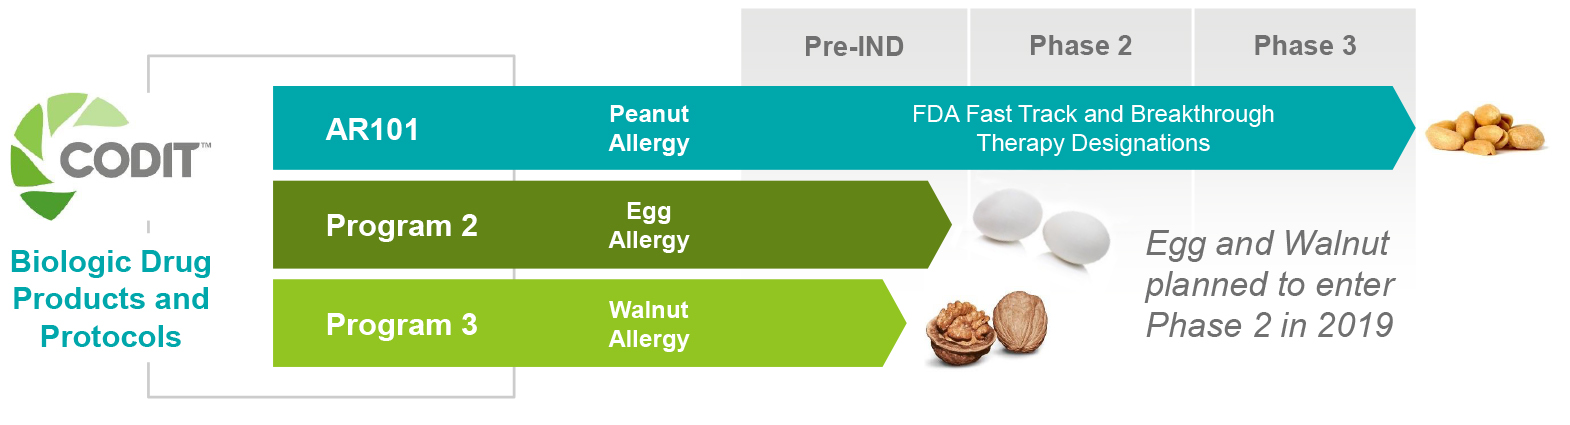 Expanding CODIT™ to Other Major Food Allergies